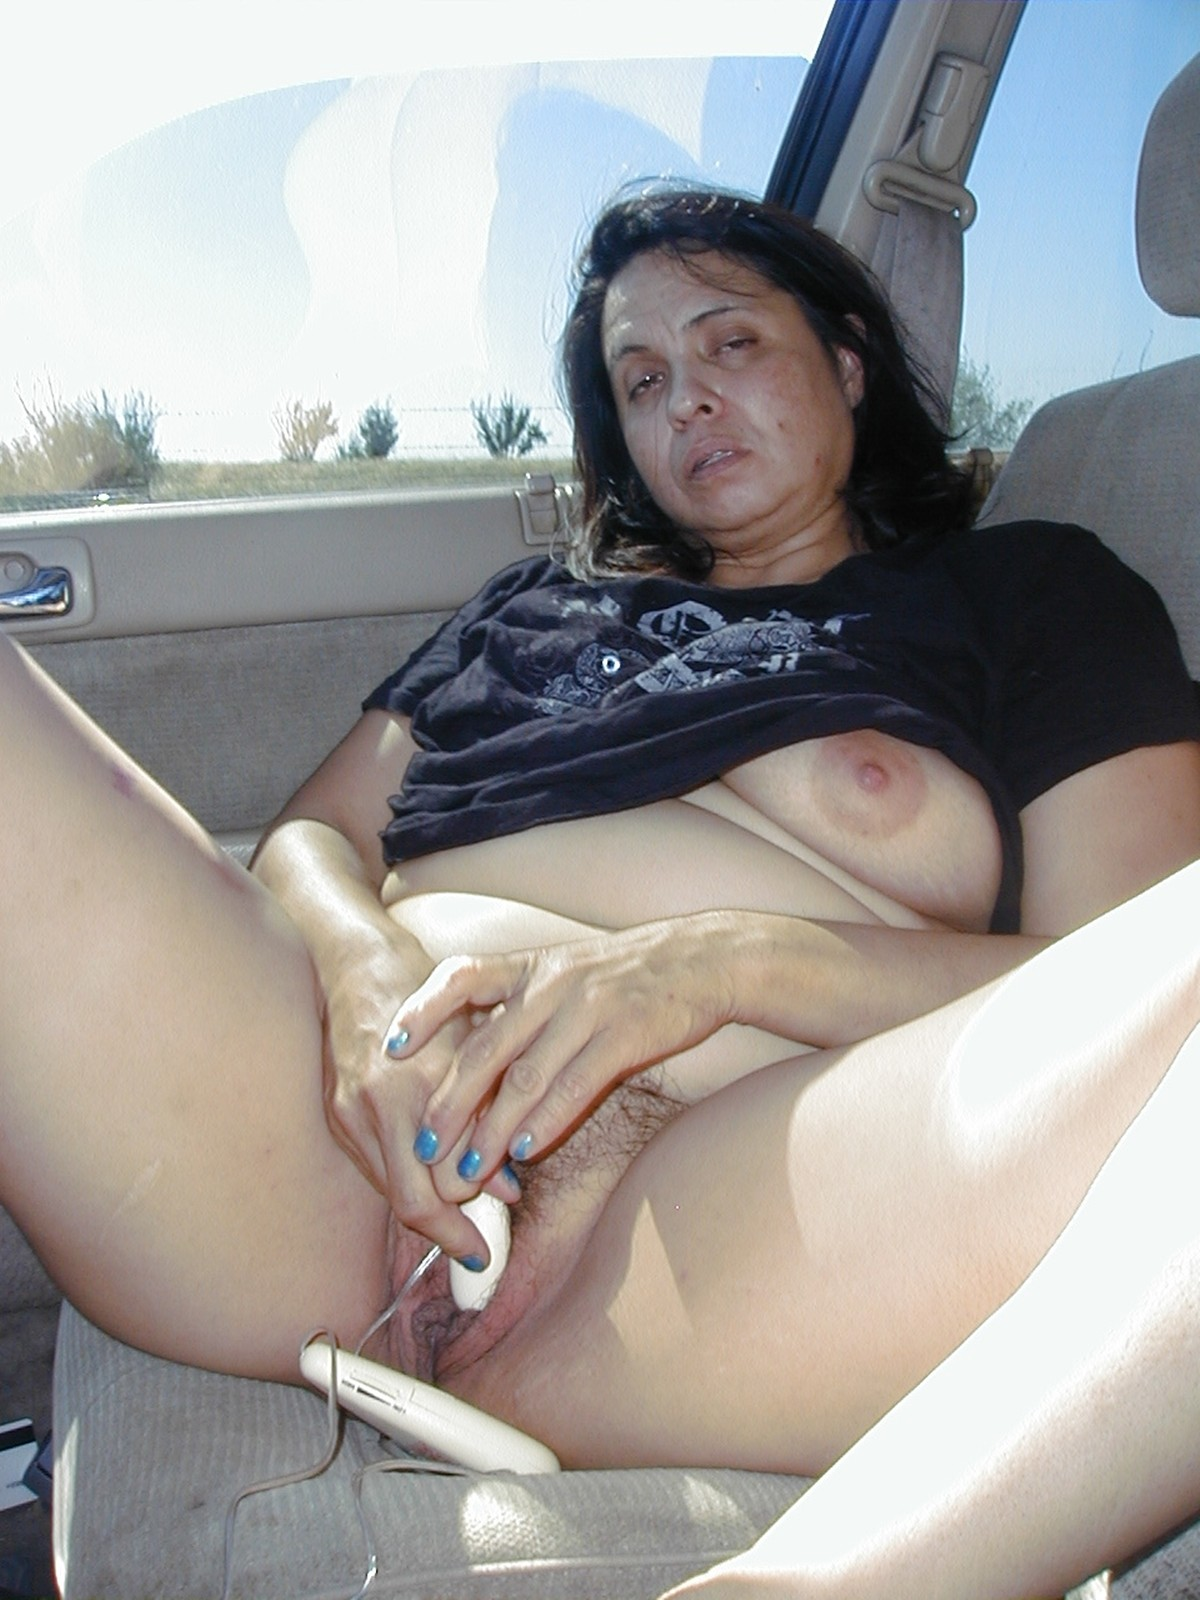 amature wife pictures lreland